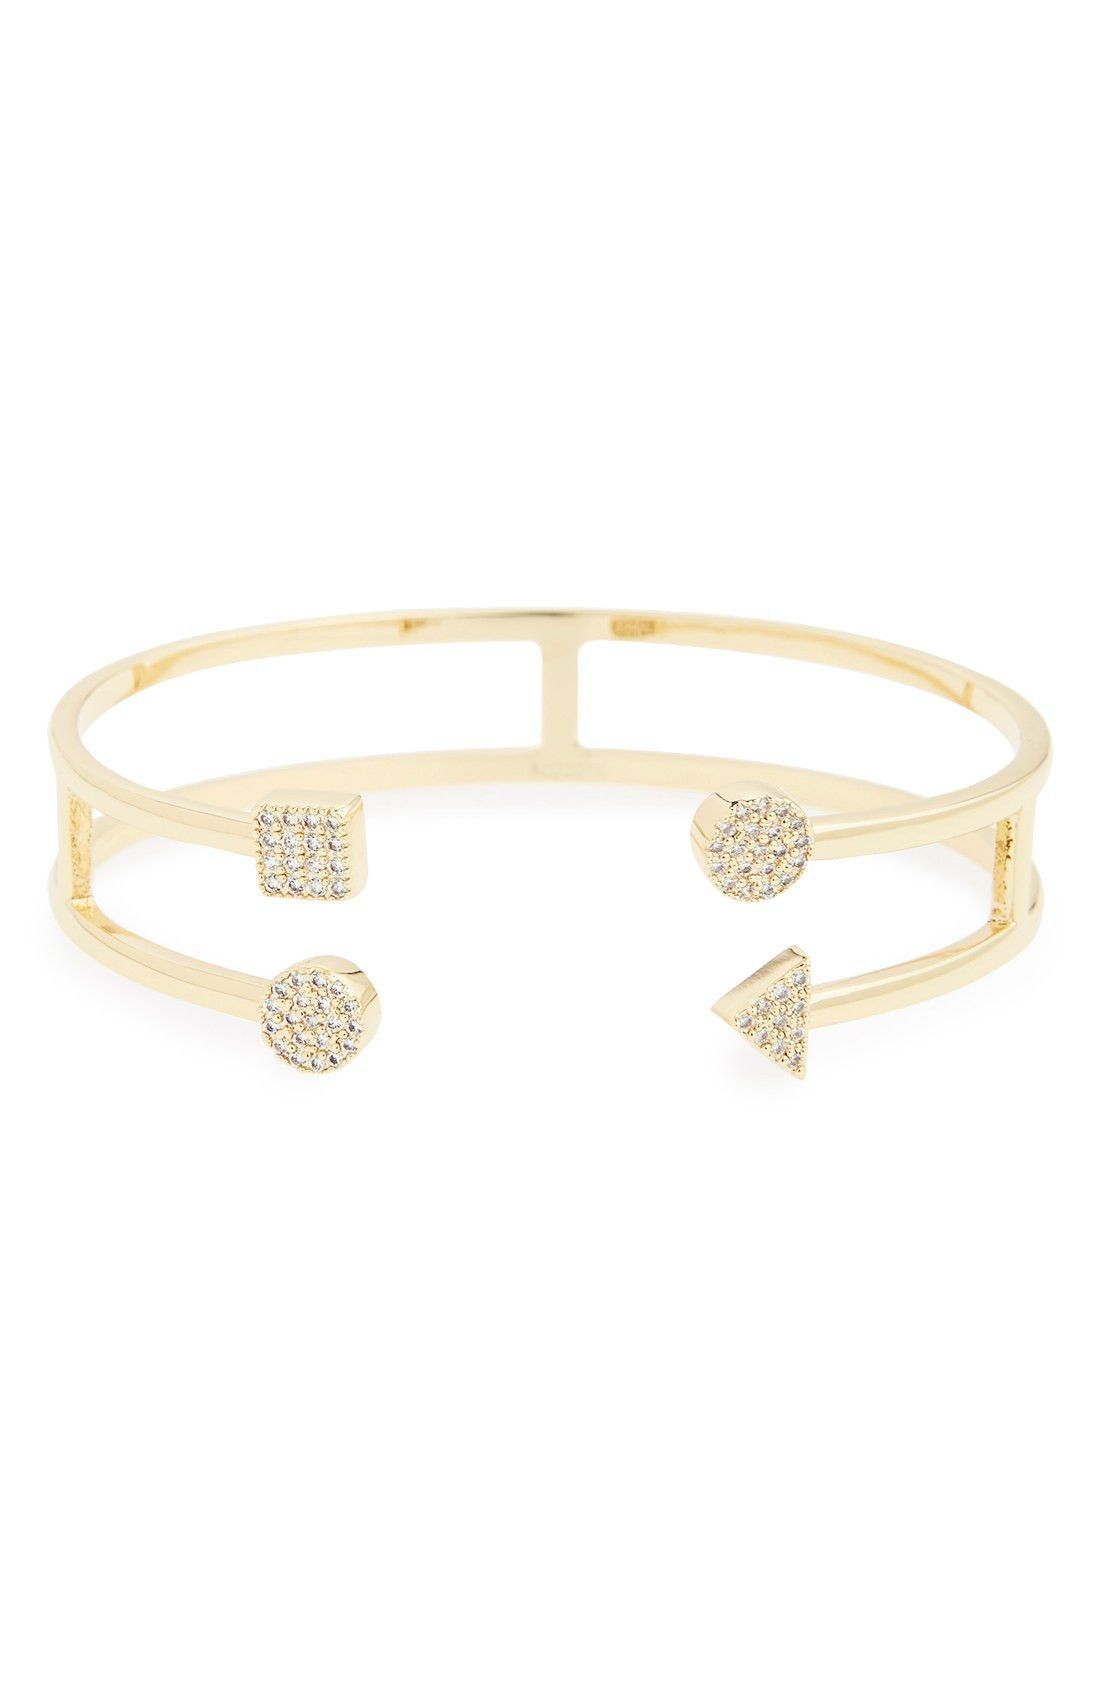 Riccova circle u square double bar cuff bracelet girls products